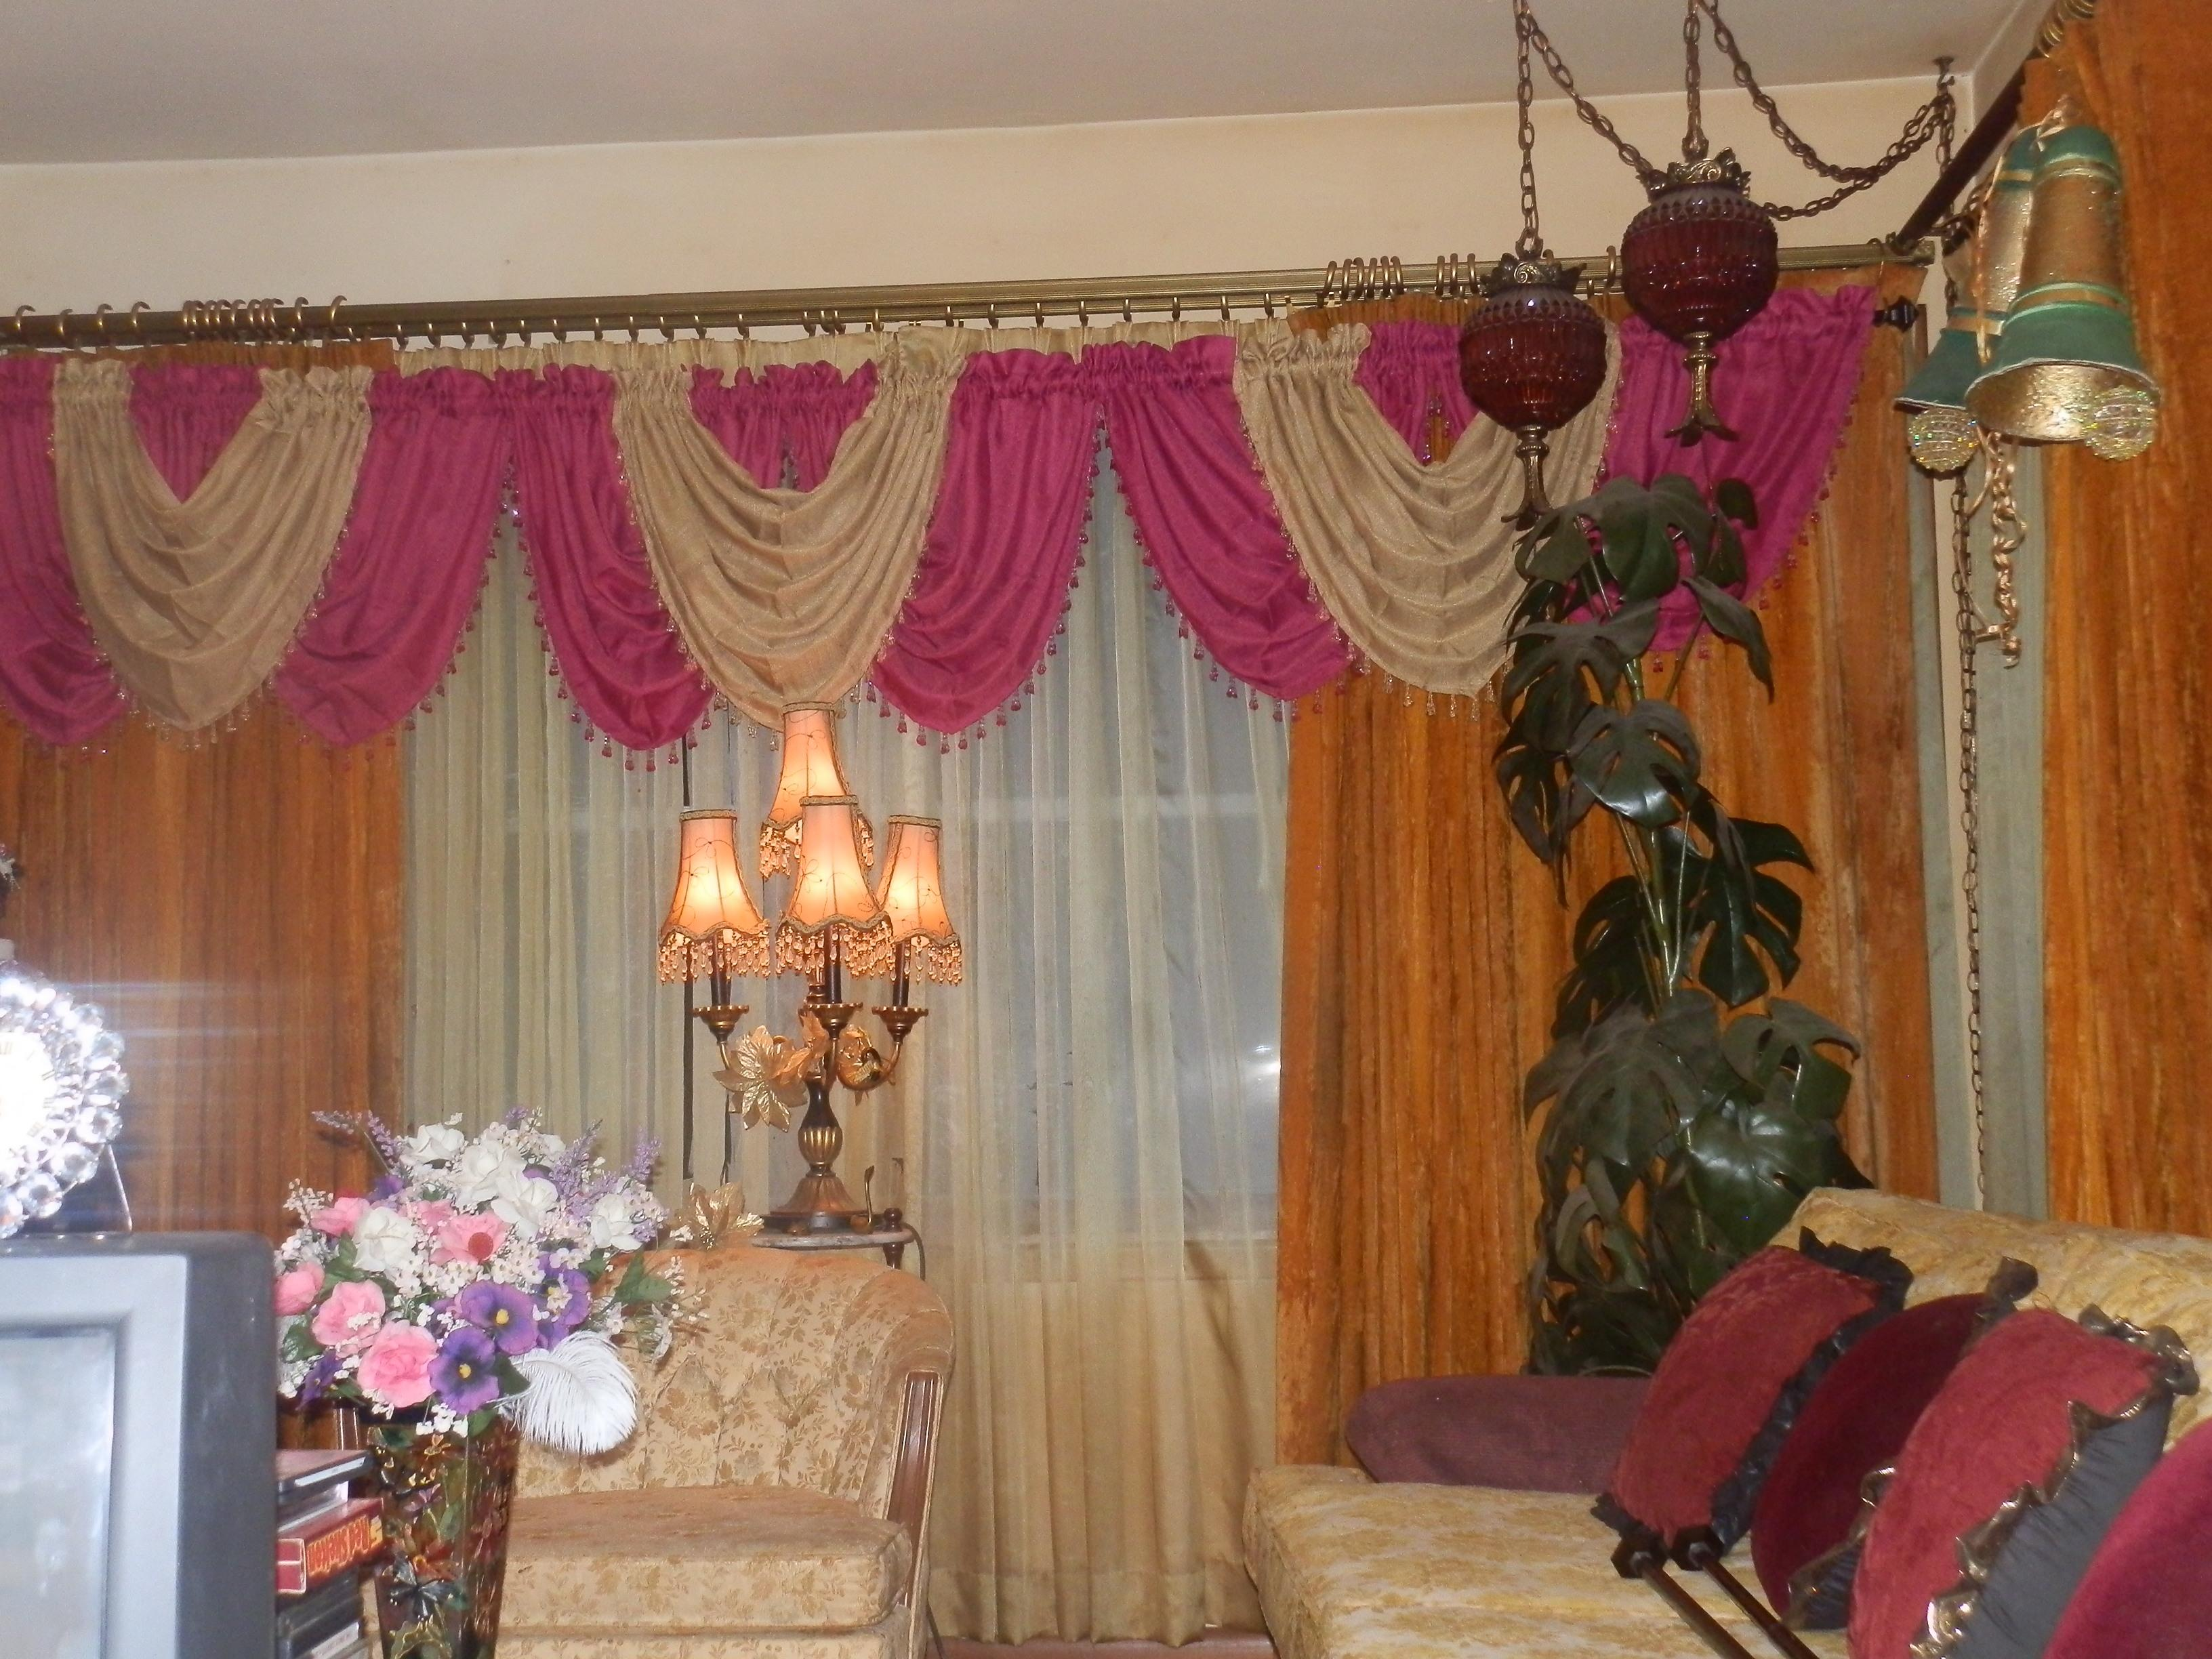 curtain room image living decorative style curtainvalance ideas windows valances terrific sturdy for reputable home decorate bibwyy interior rc valance also with artistic